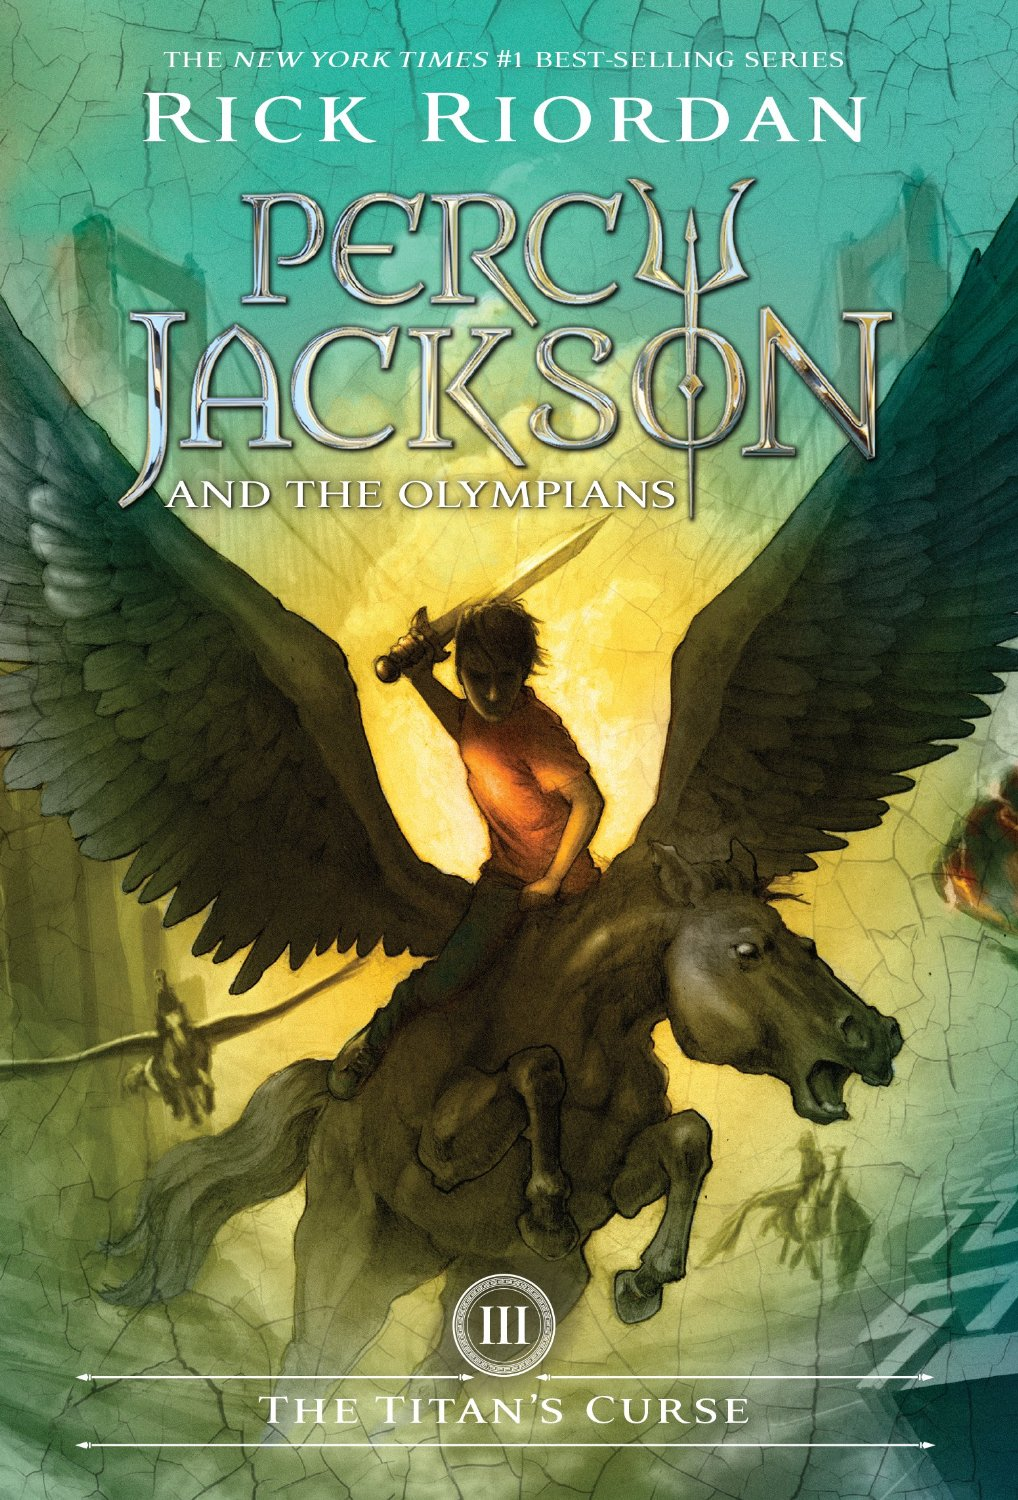 Percy Jackson Book Cover Pictures ~ Rick riordan the titan s curse